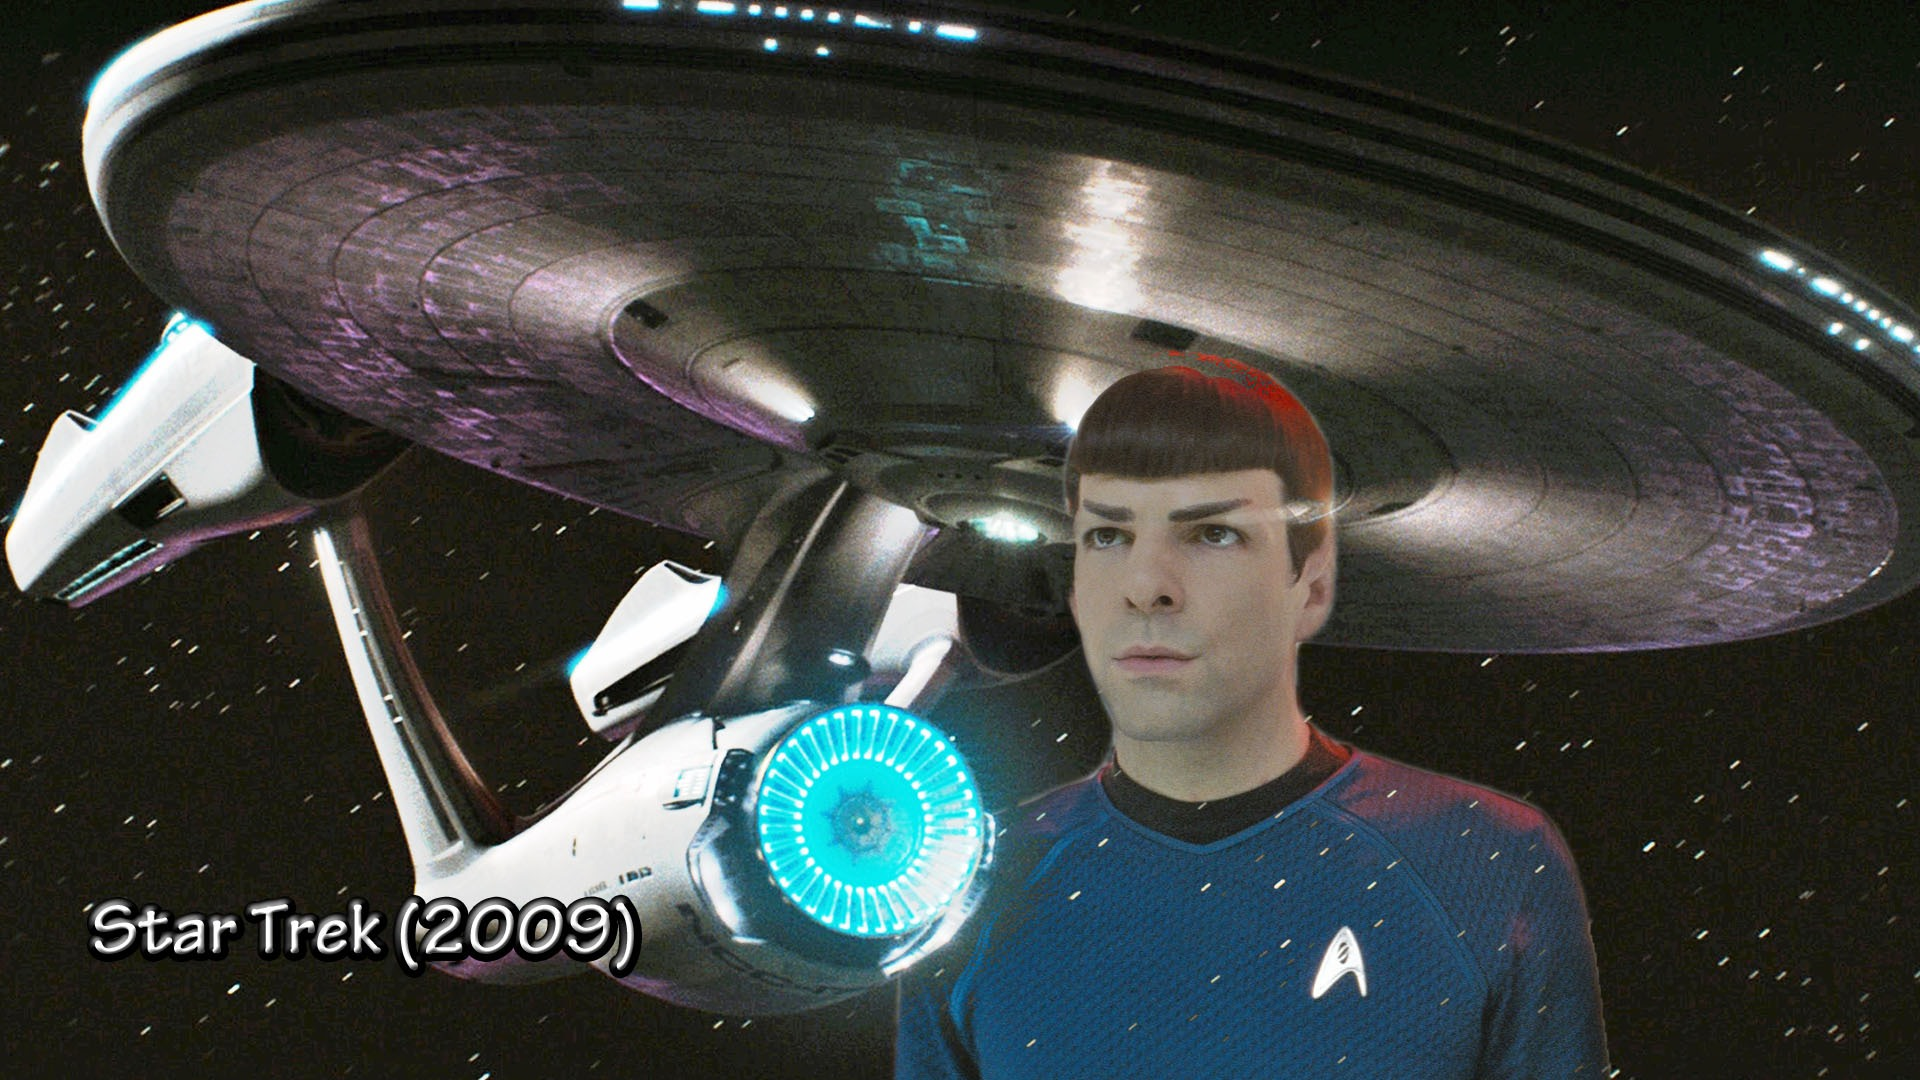 Star Trek 2009 Wallpaper 1920x1080